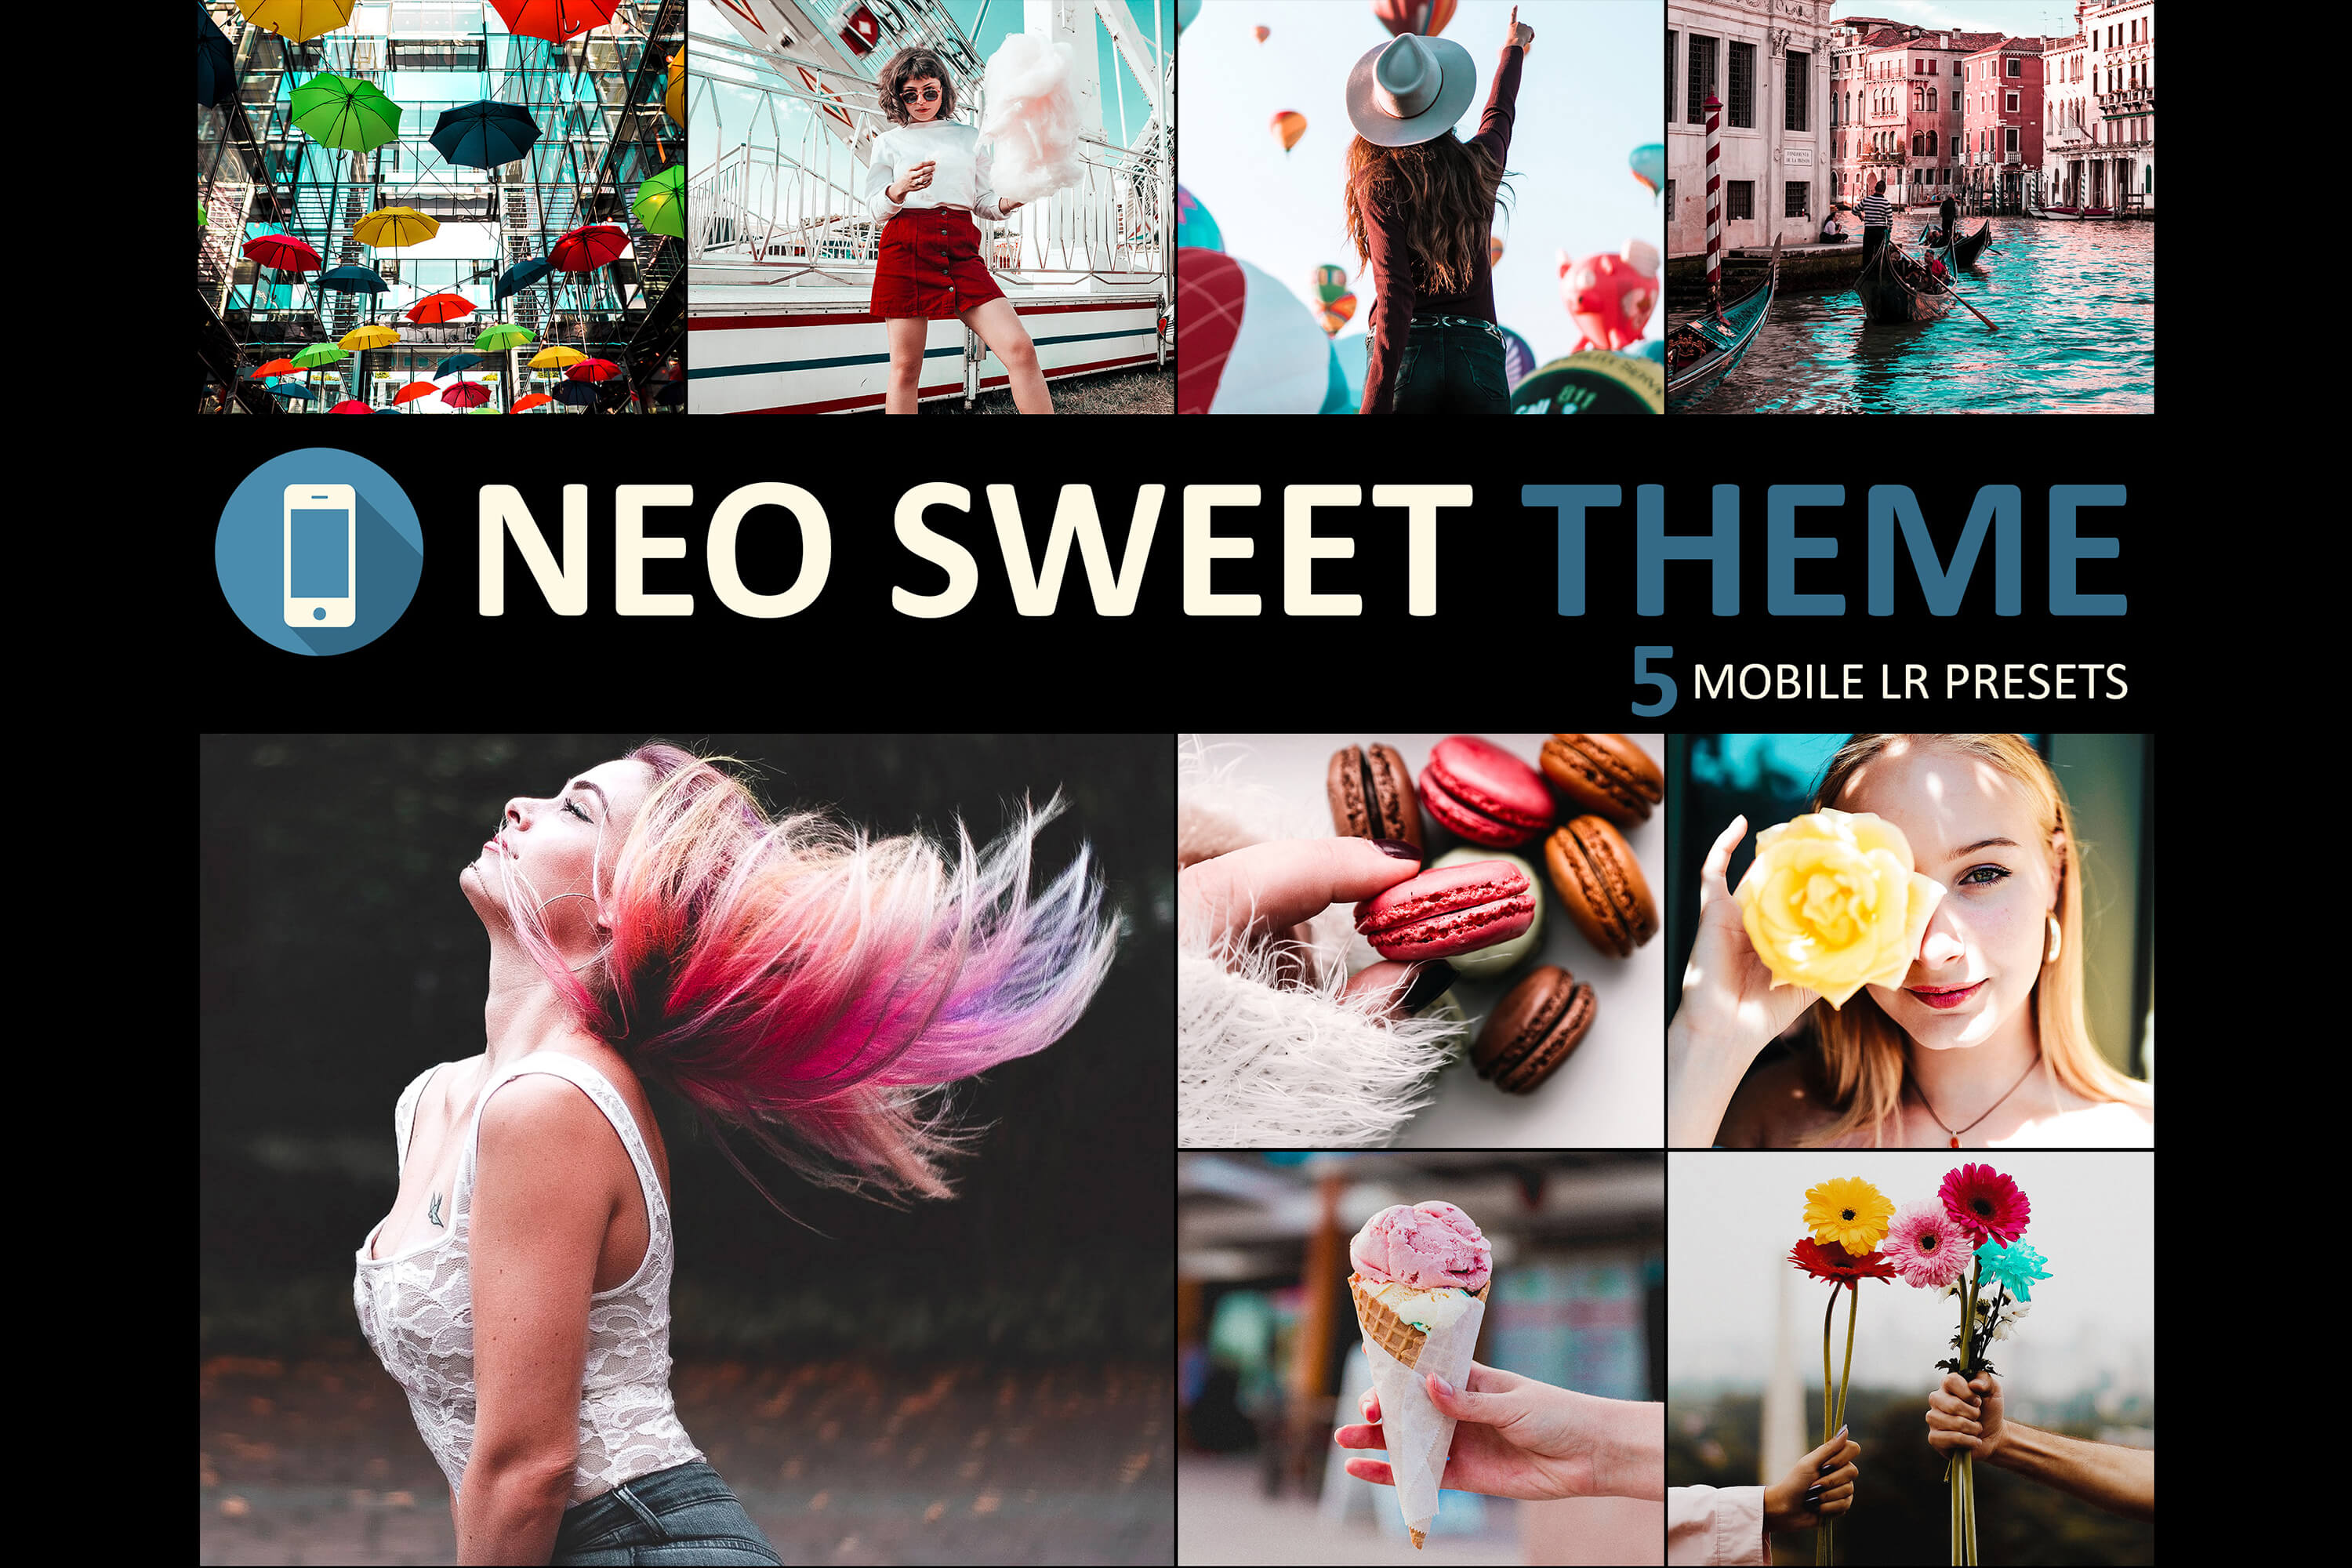 Neo Sweet Theme Mobile Lightroom Presets from 3Motional